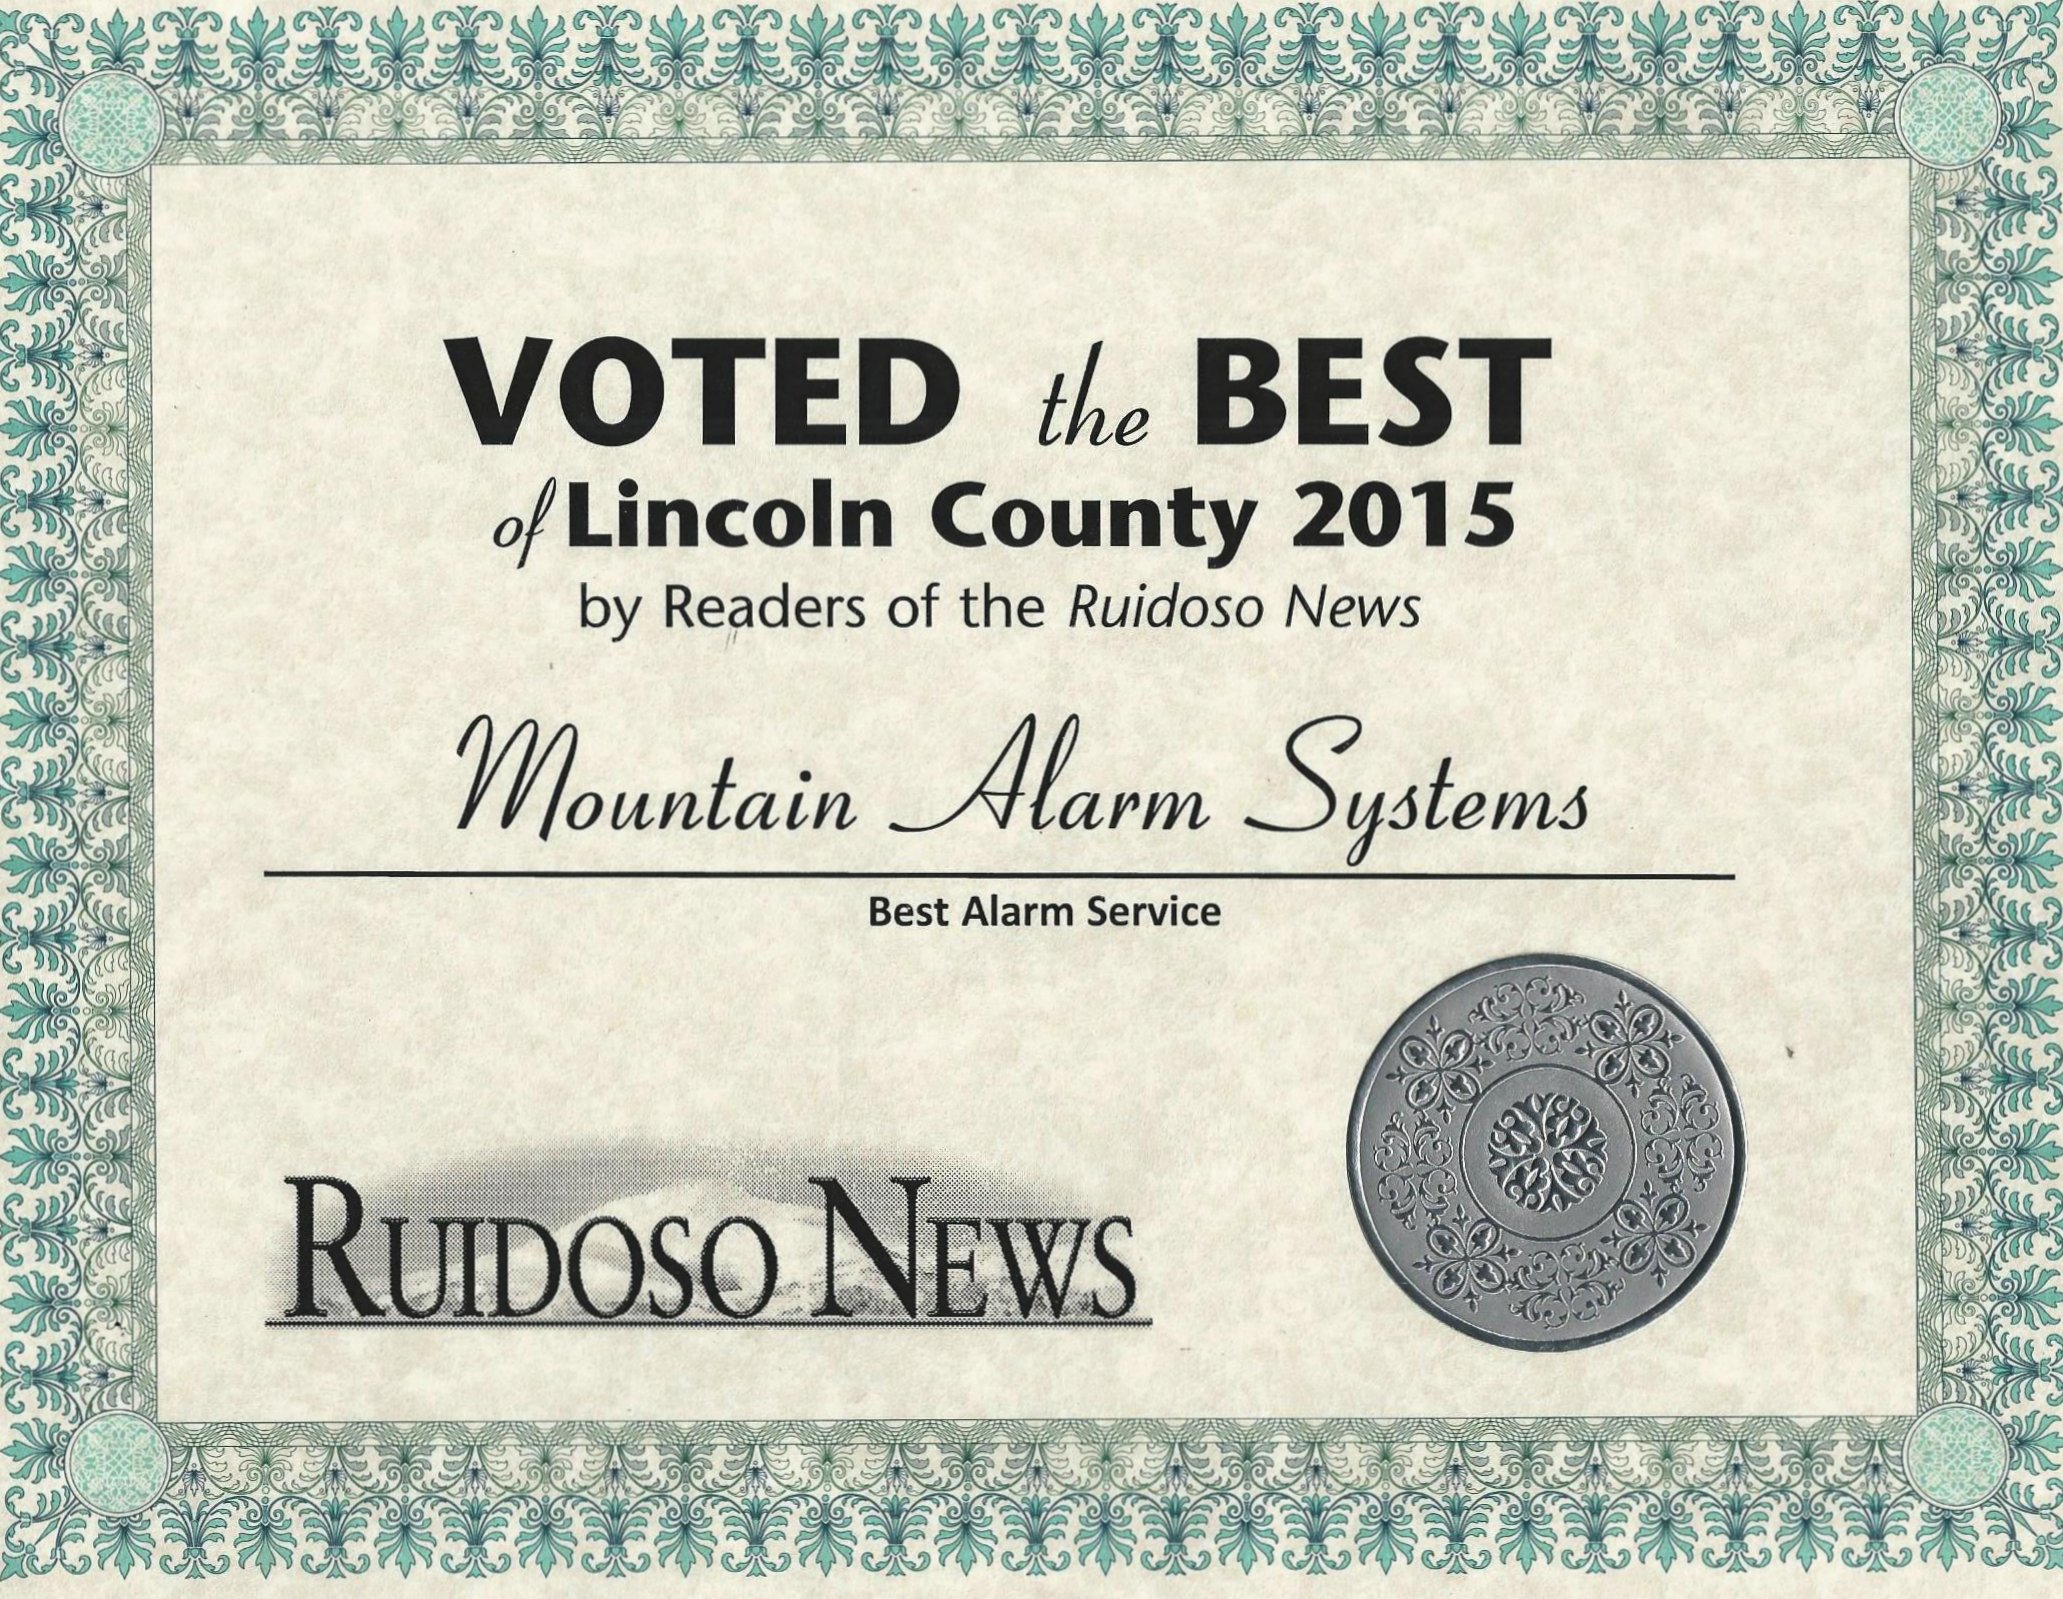 Voted the best of Licoln County award